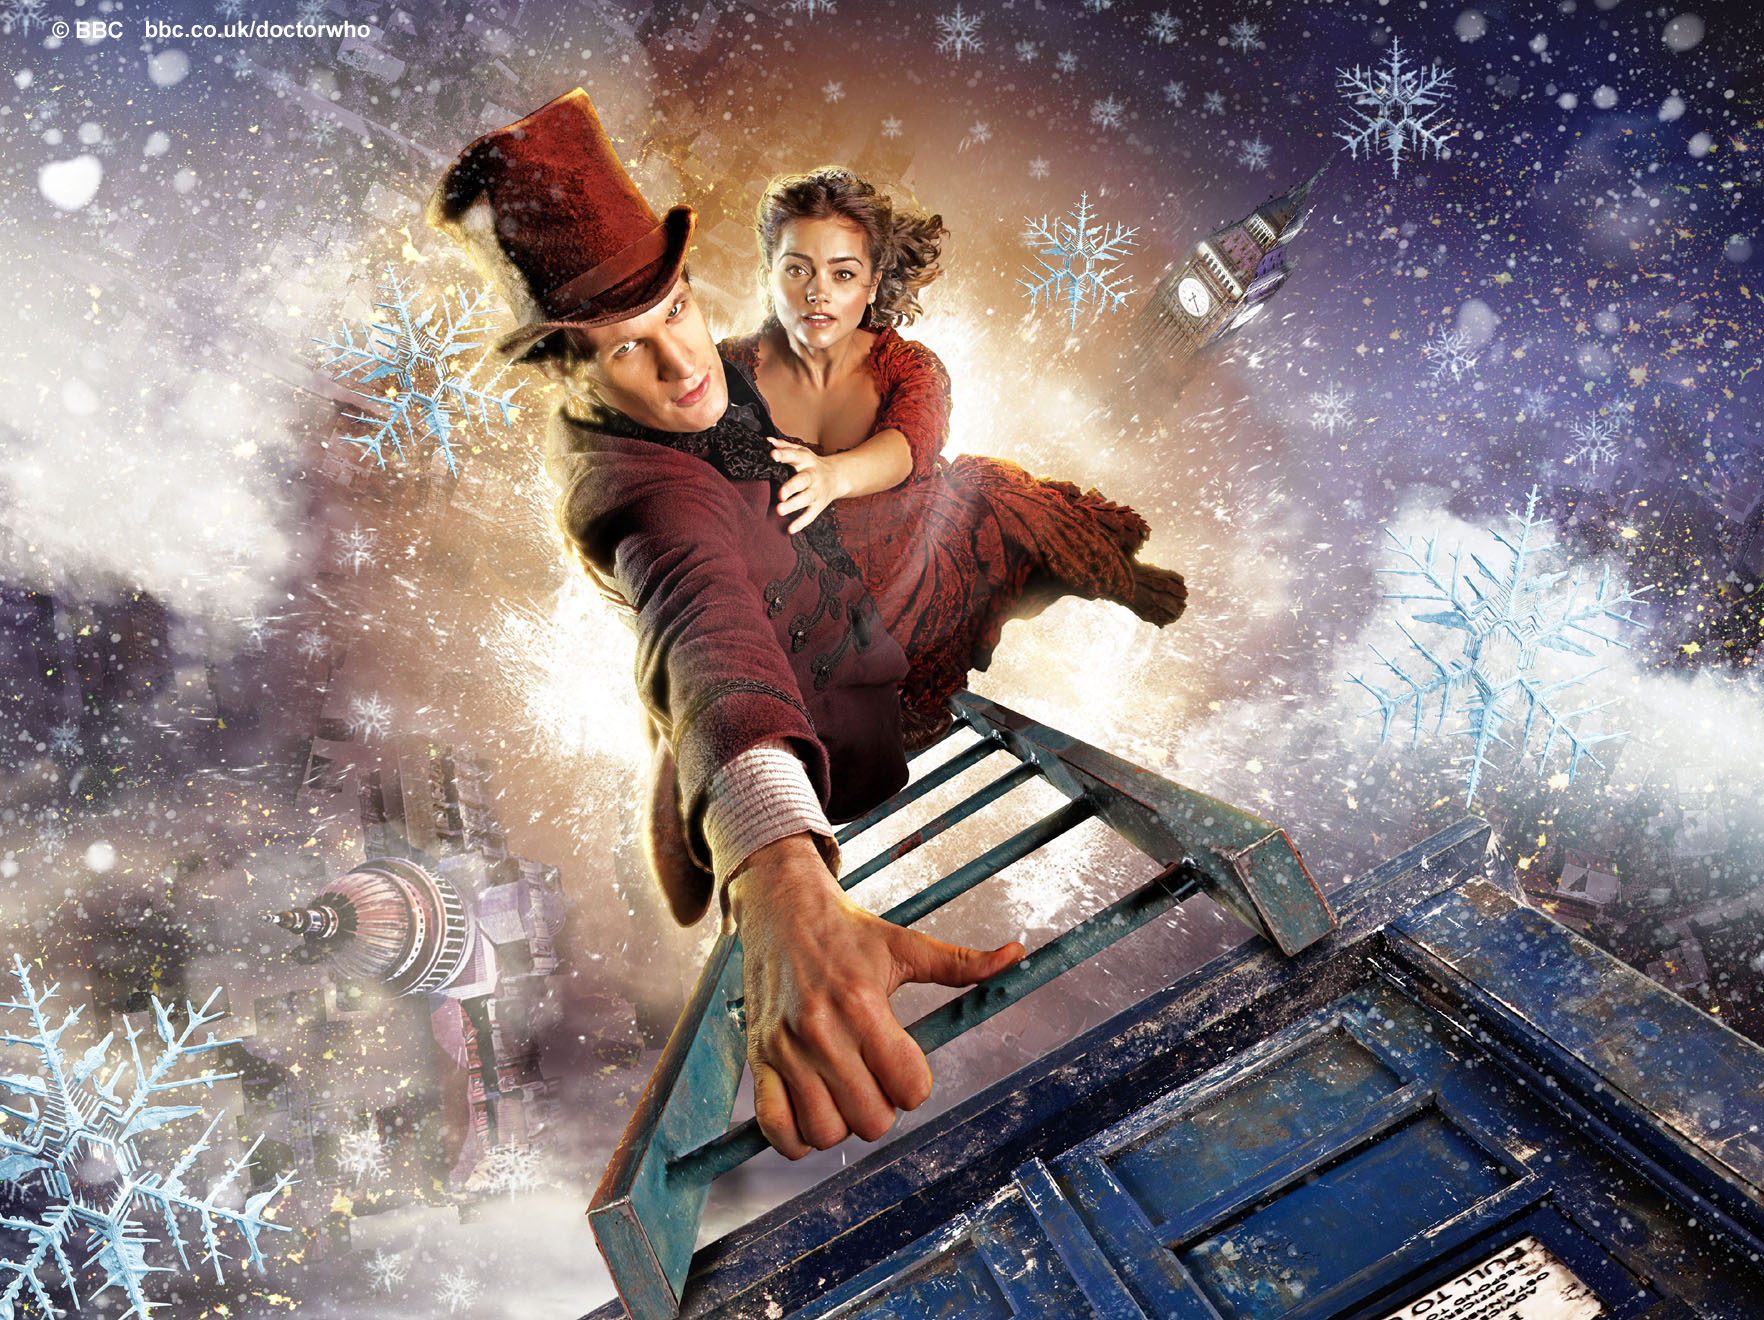 Bbc Latest News Doctor Who Wintry Wallpapers